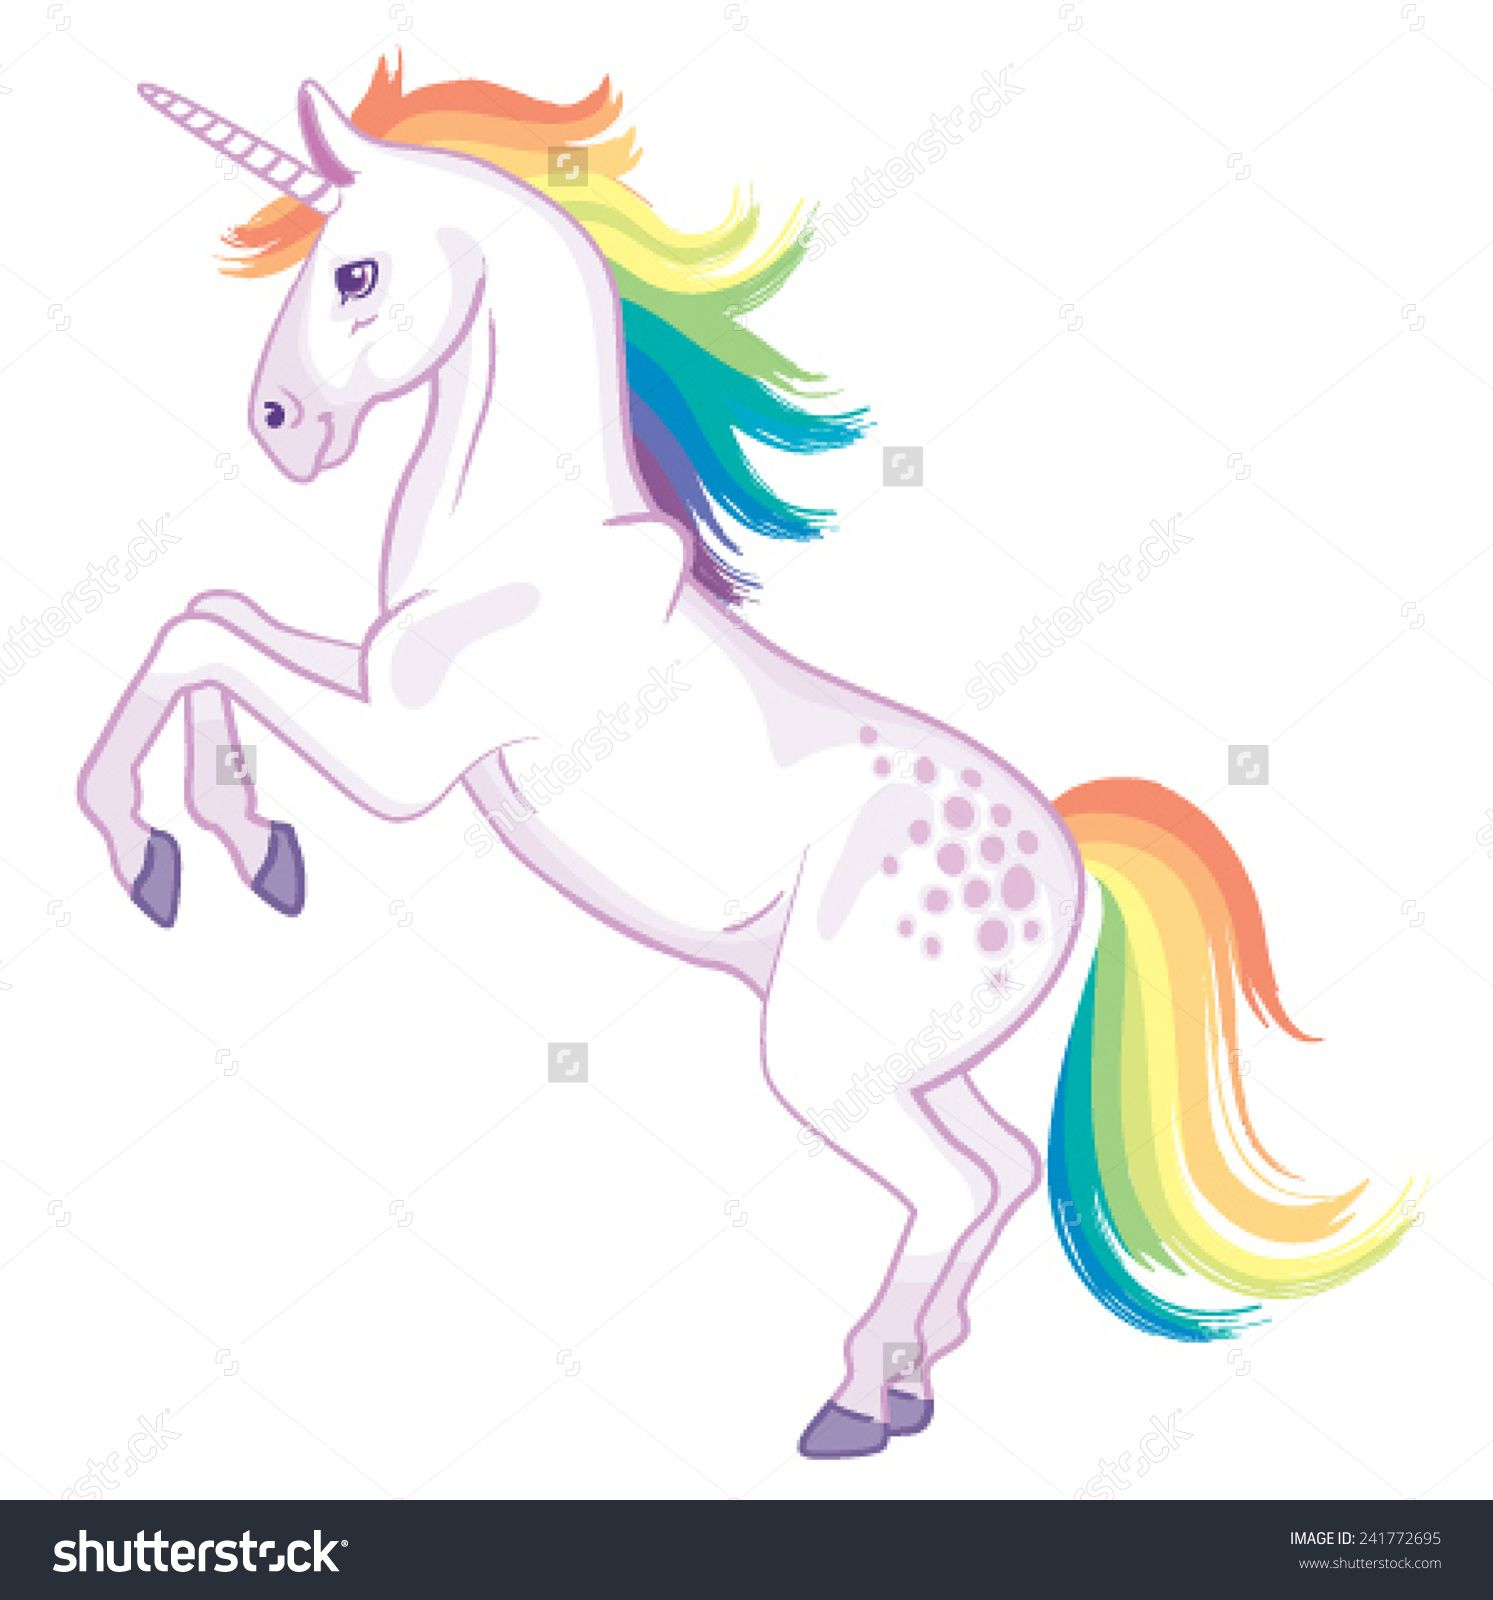 A Cartoon Unicorn With Rainbow Mane And Tail Rearing Up On Its